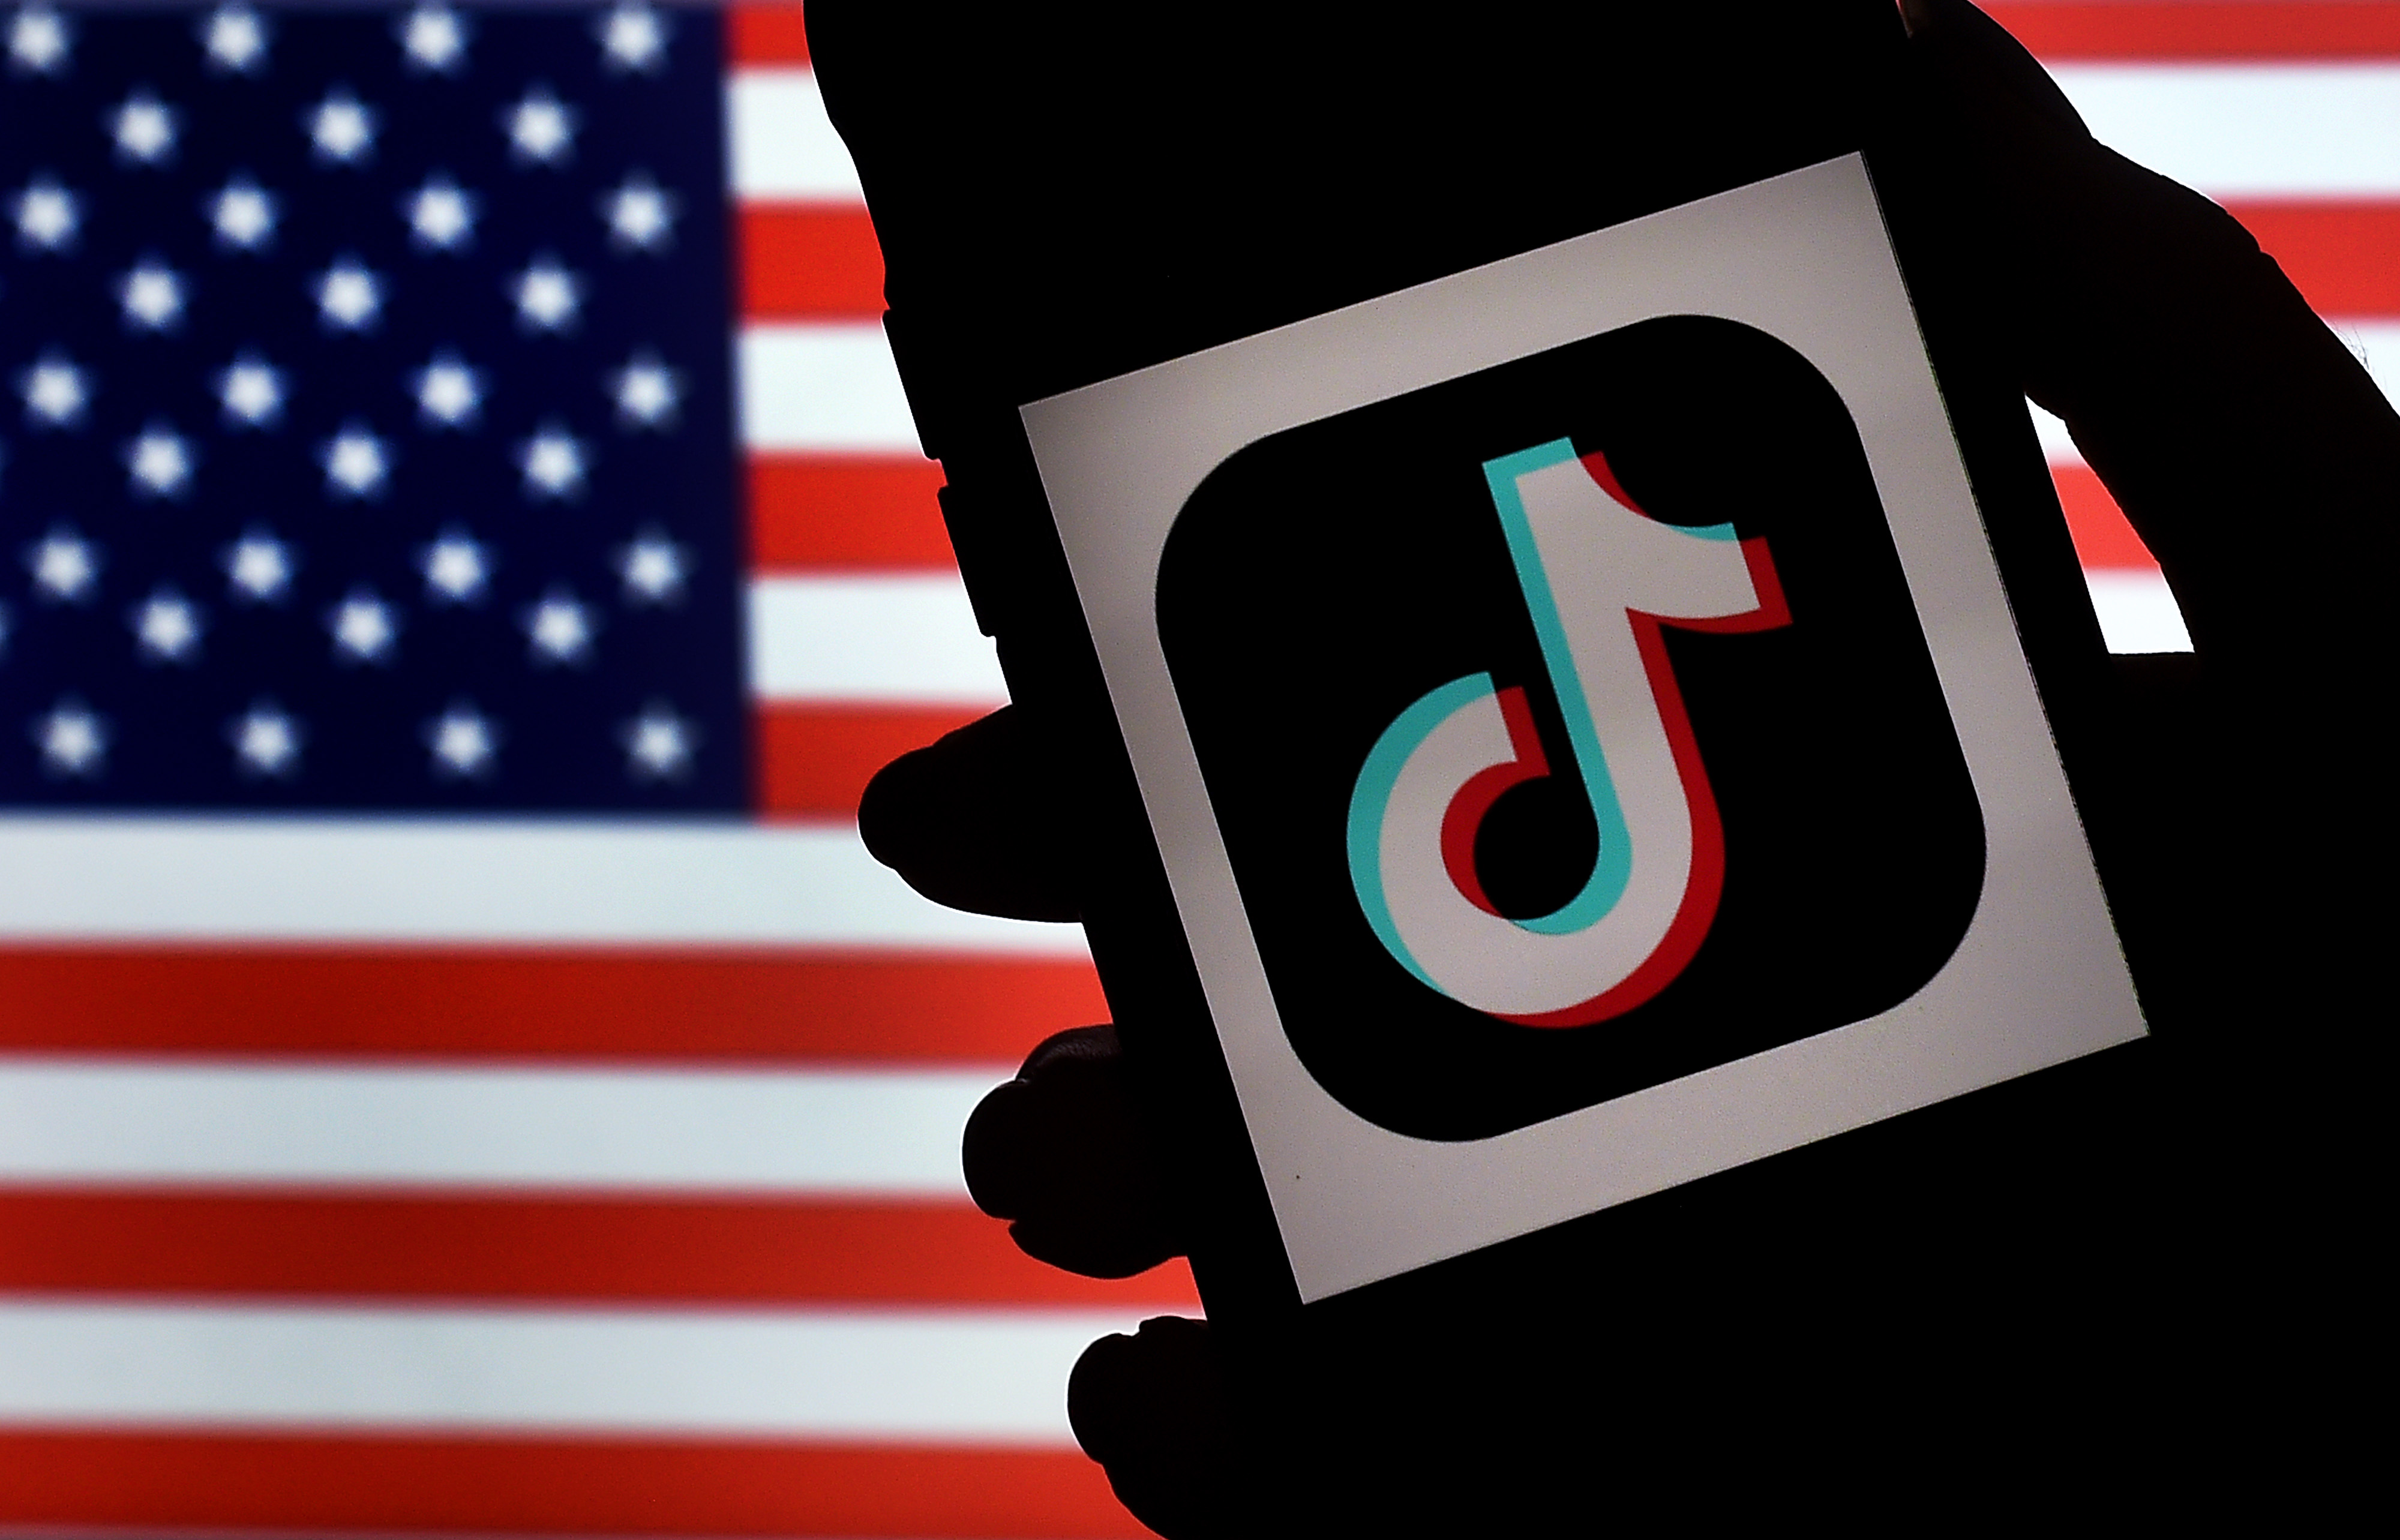 A federal judge on Sunday postponed a Trump administration order that would have banned the popular video sharing app TikTok from U.S. smartphone app stores around midnight.